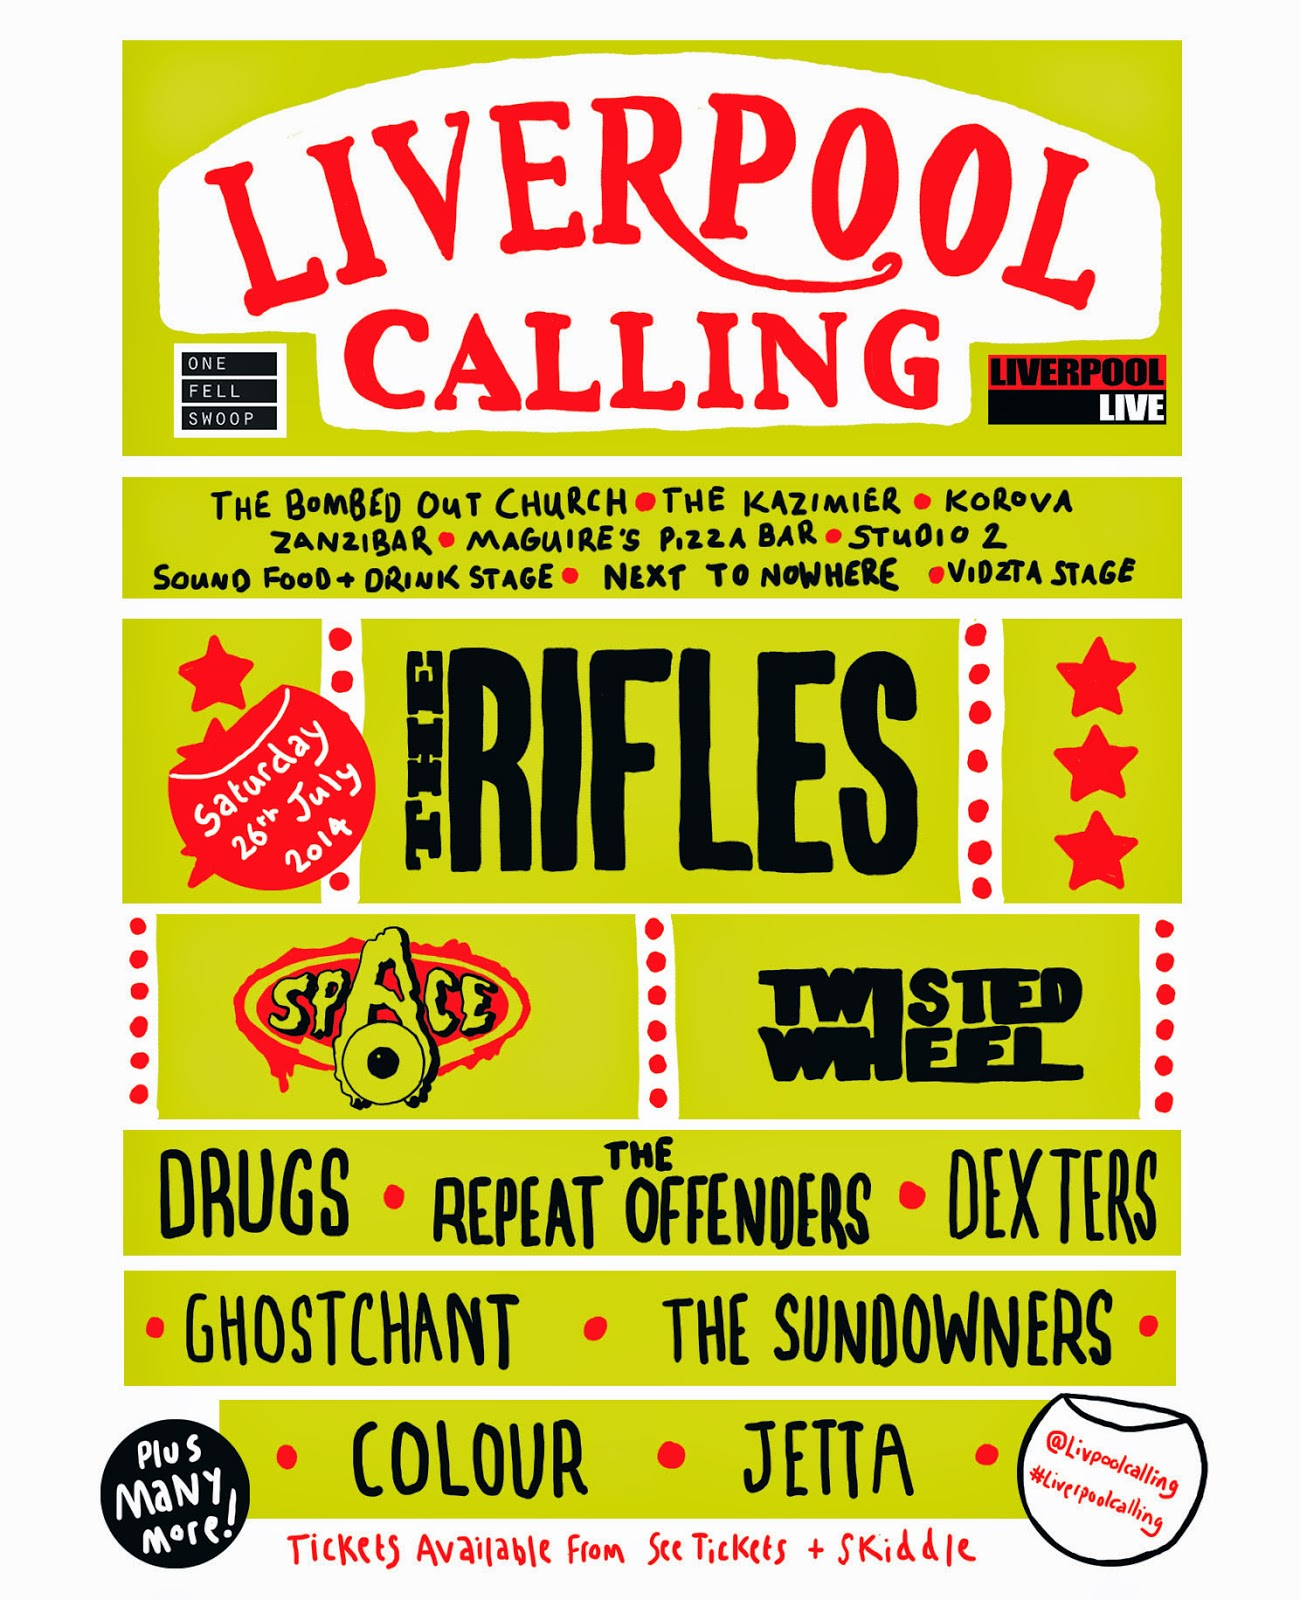 Liverpool Calling 2014 - Final Line-Up Confirmed